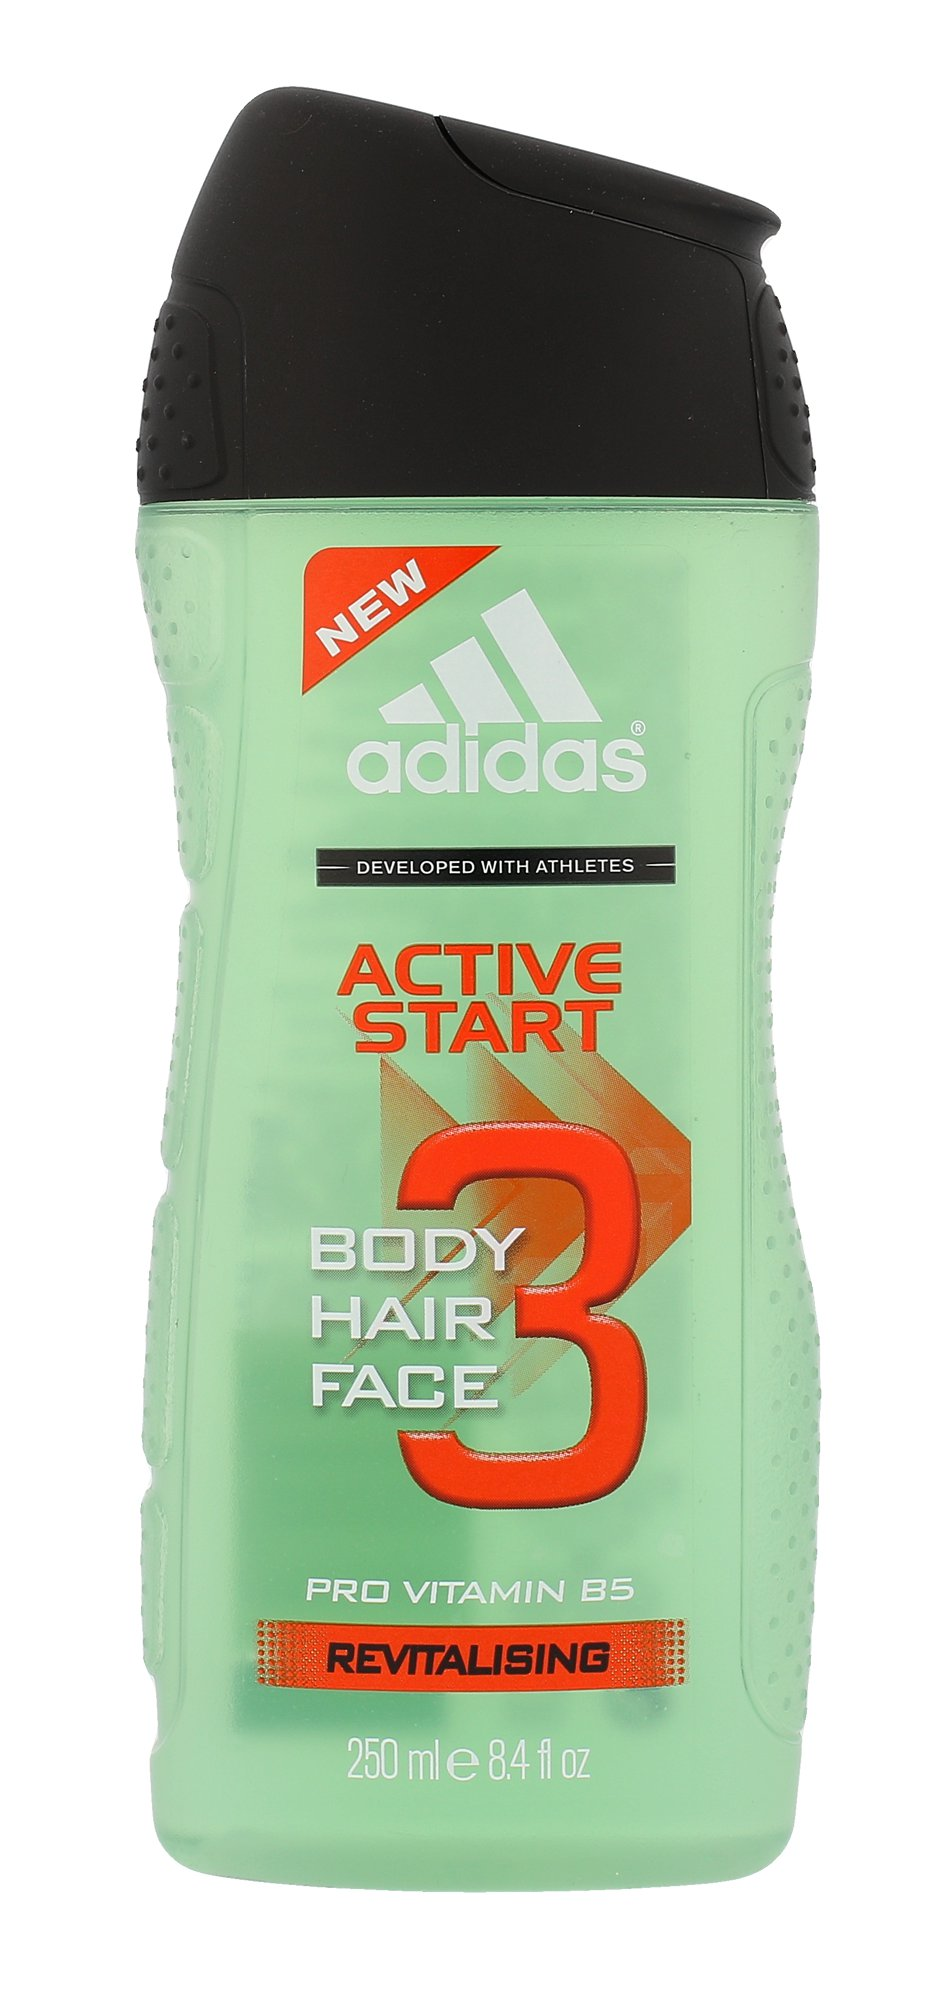 Adidas Active Start 3in1, Sprchovací gél 250ml